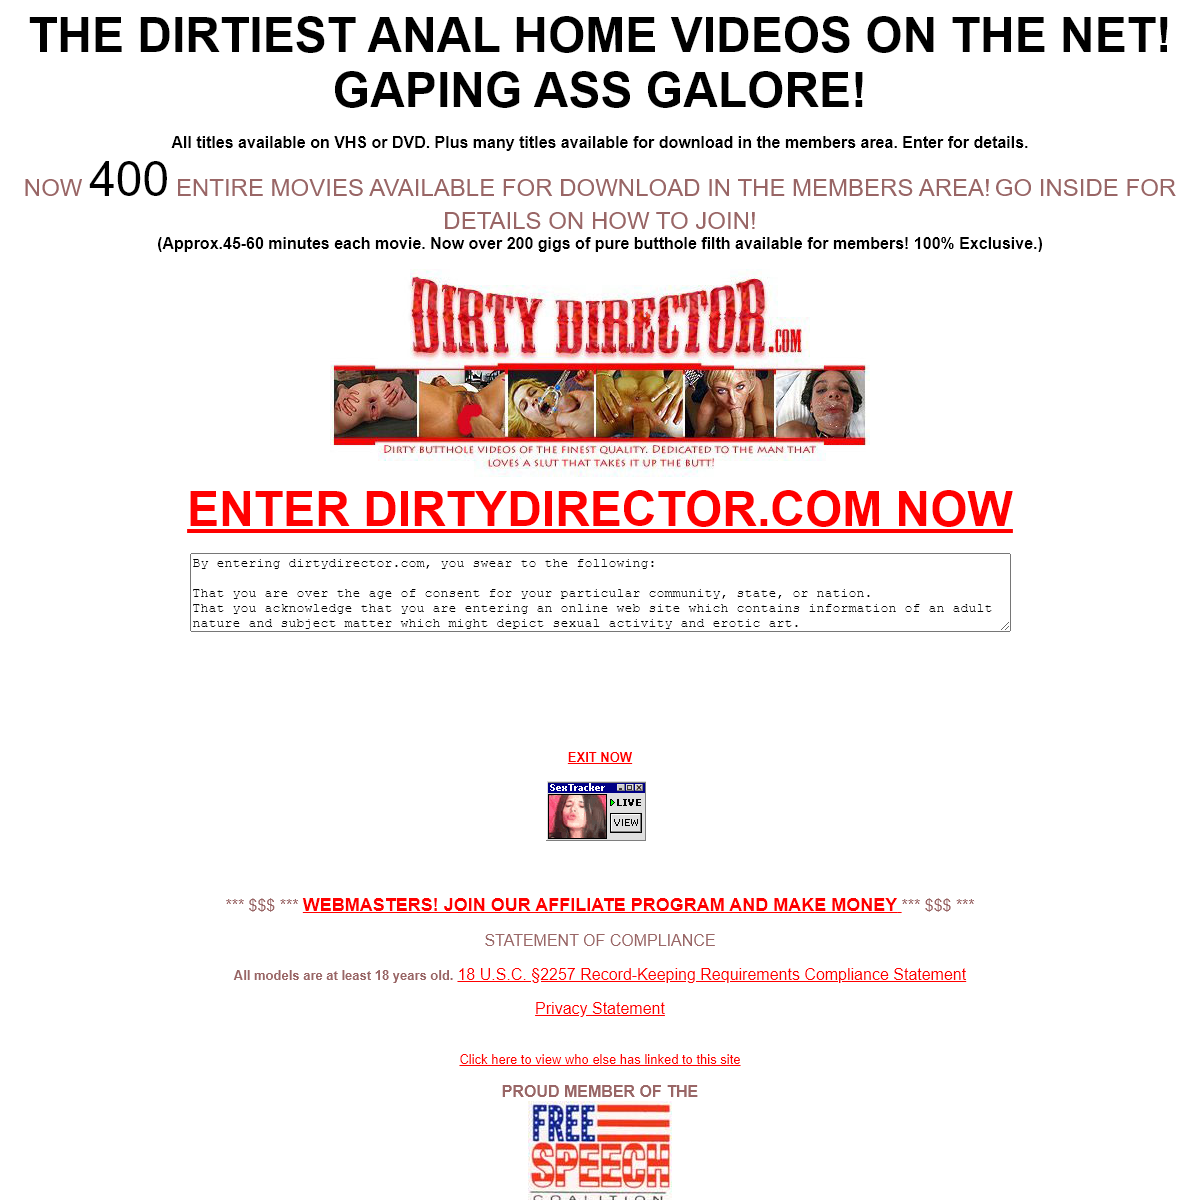 A complete backup of www.dirtydirector.com